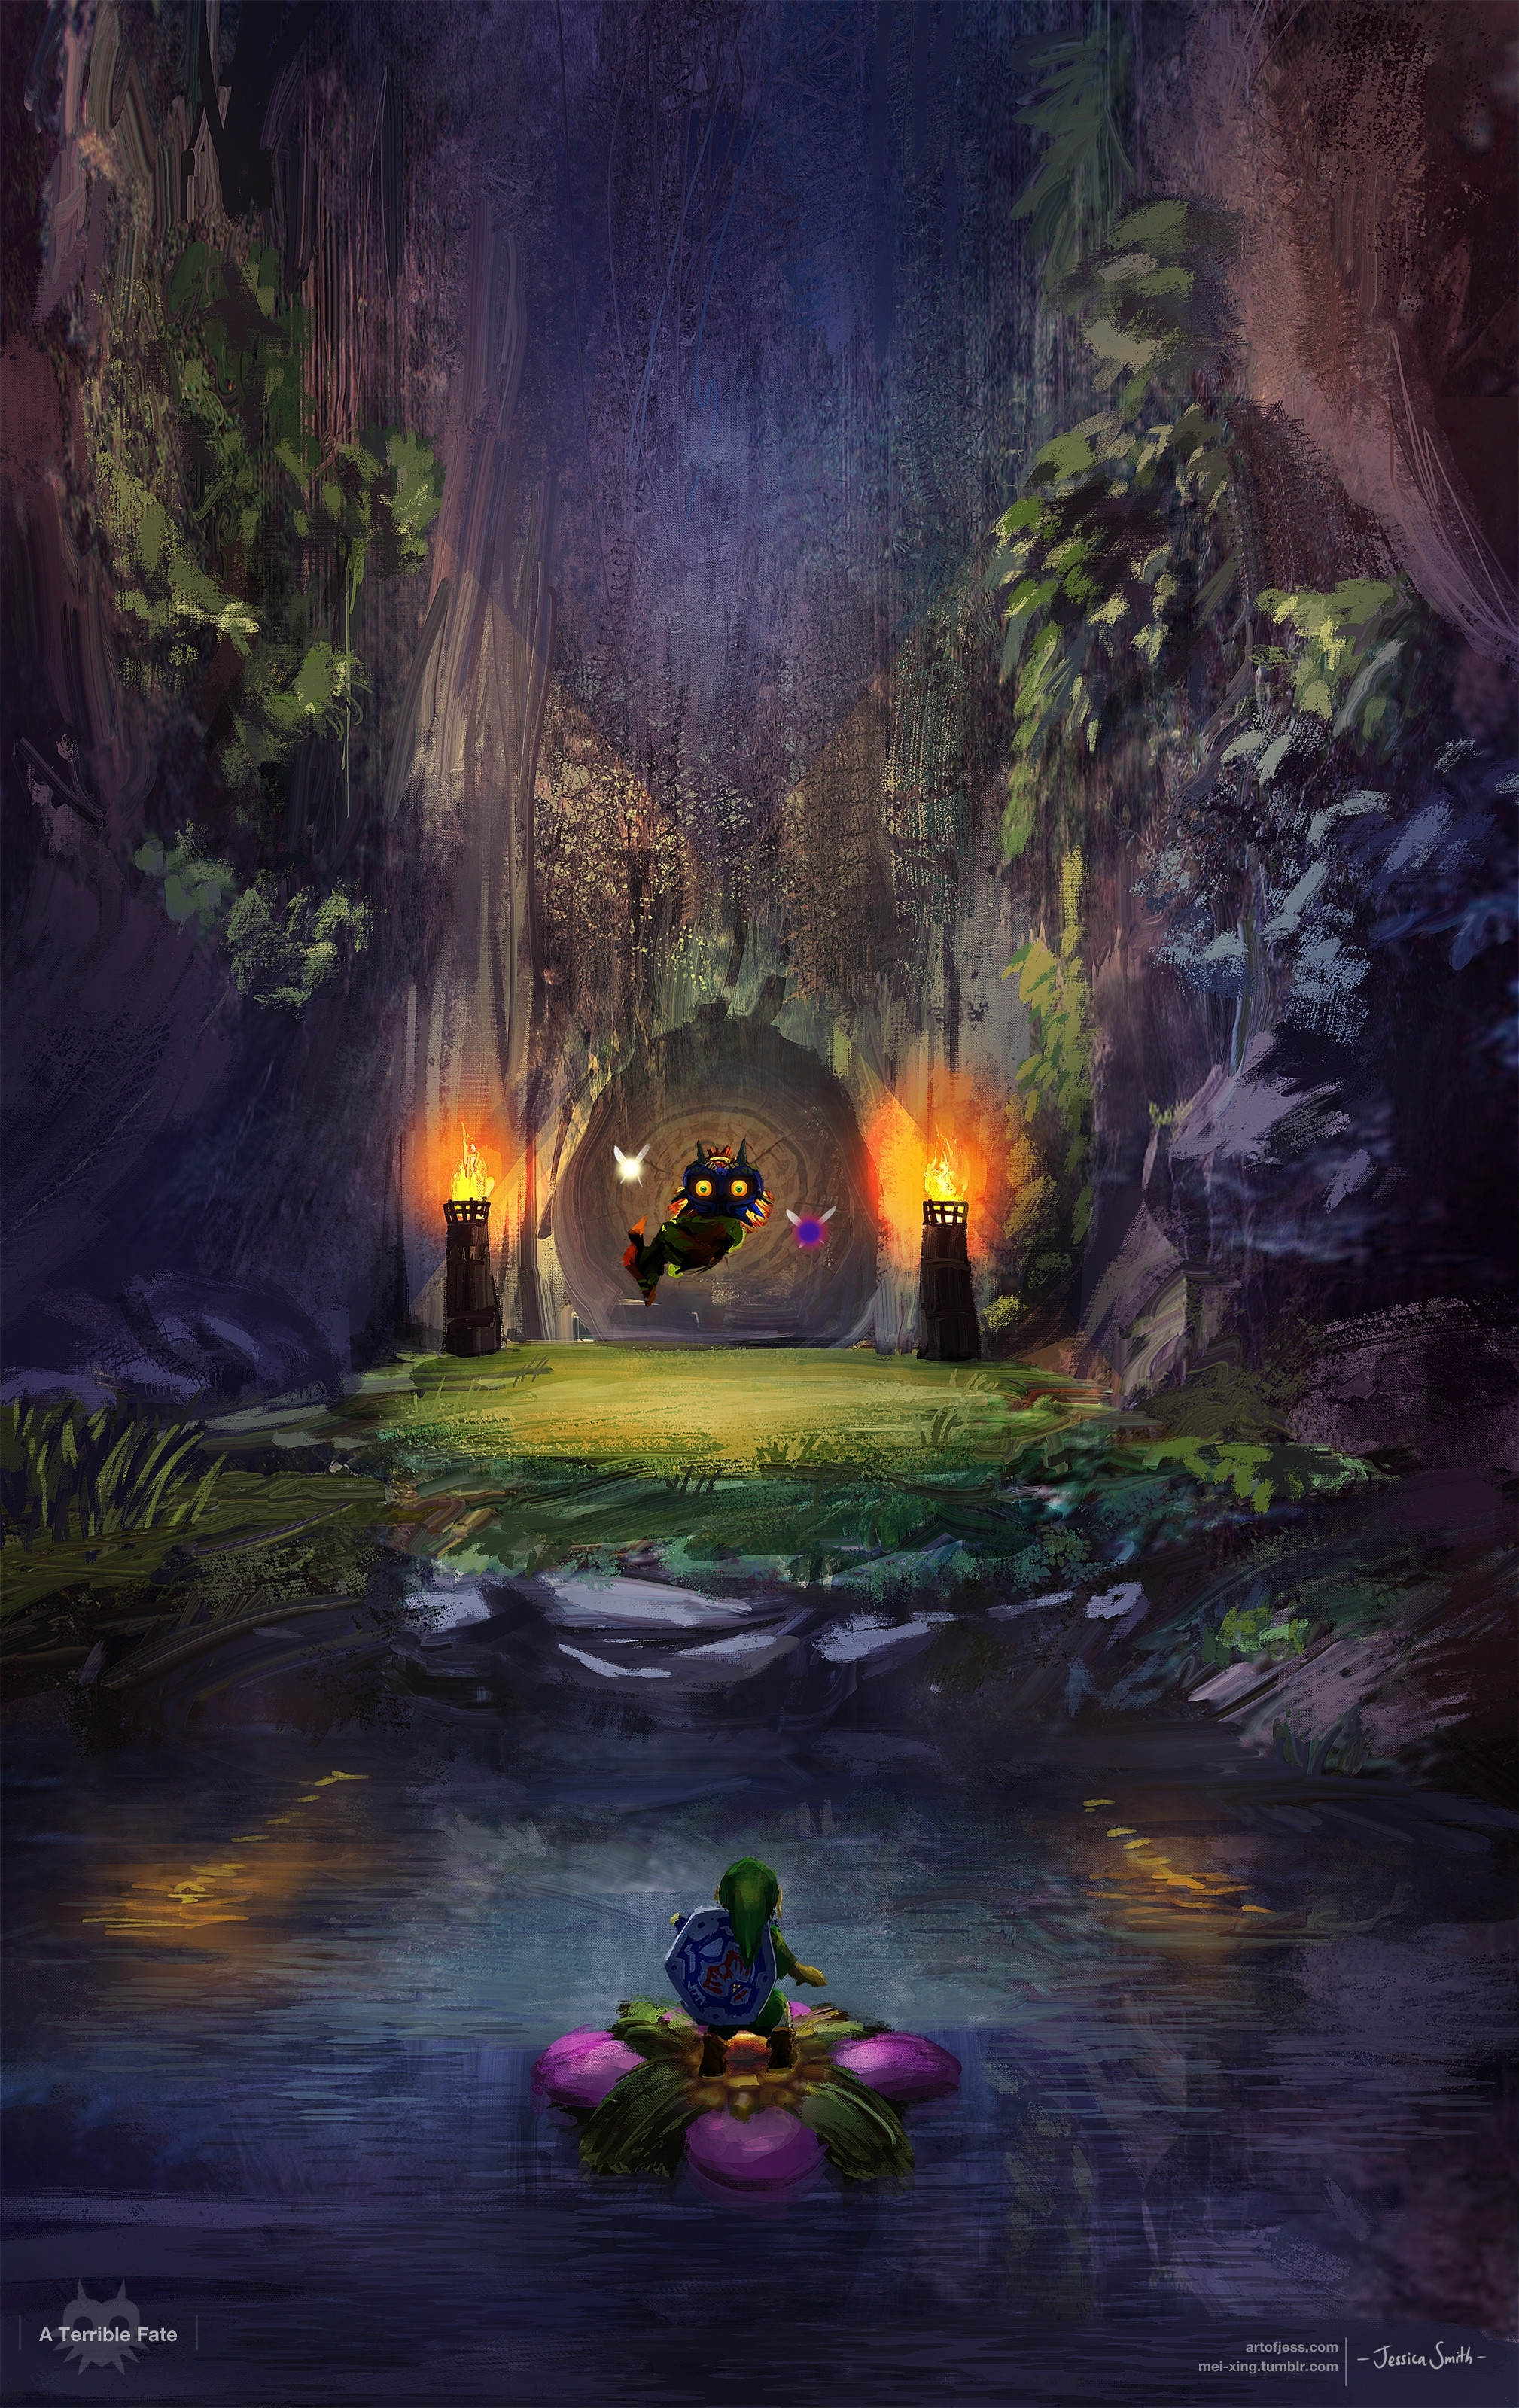 i wanted to paint something for majora's mask since it's coming out